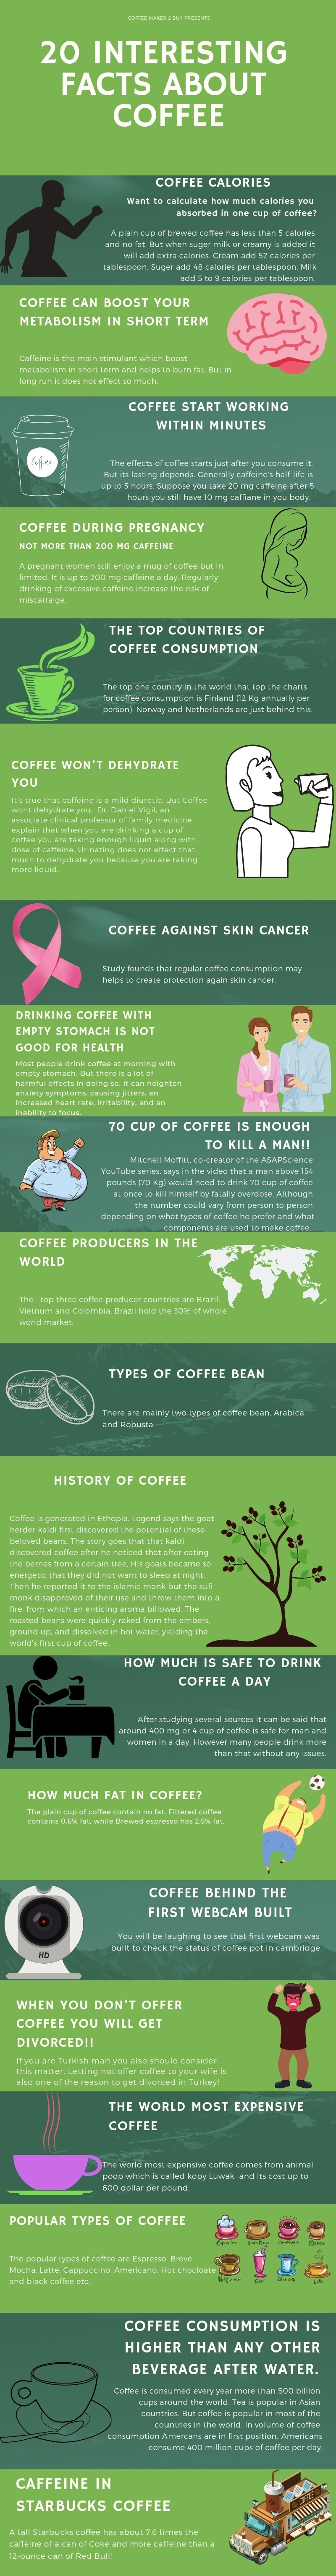 Is Coffee Good or Bad for You: 20 Surprising Facts - Infographic